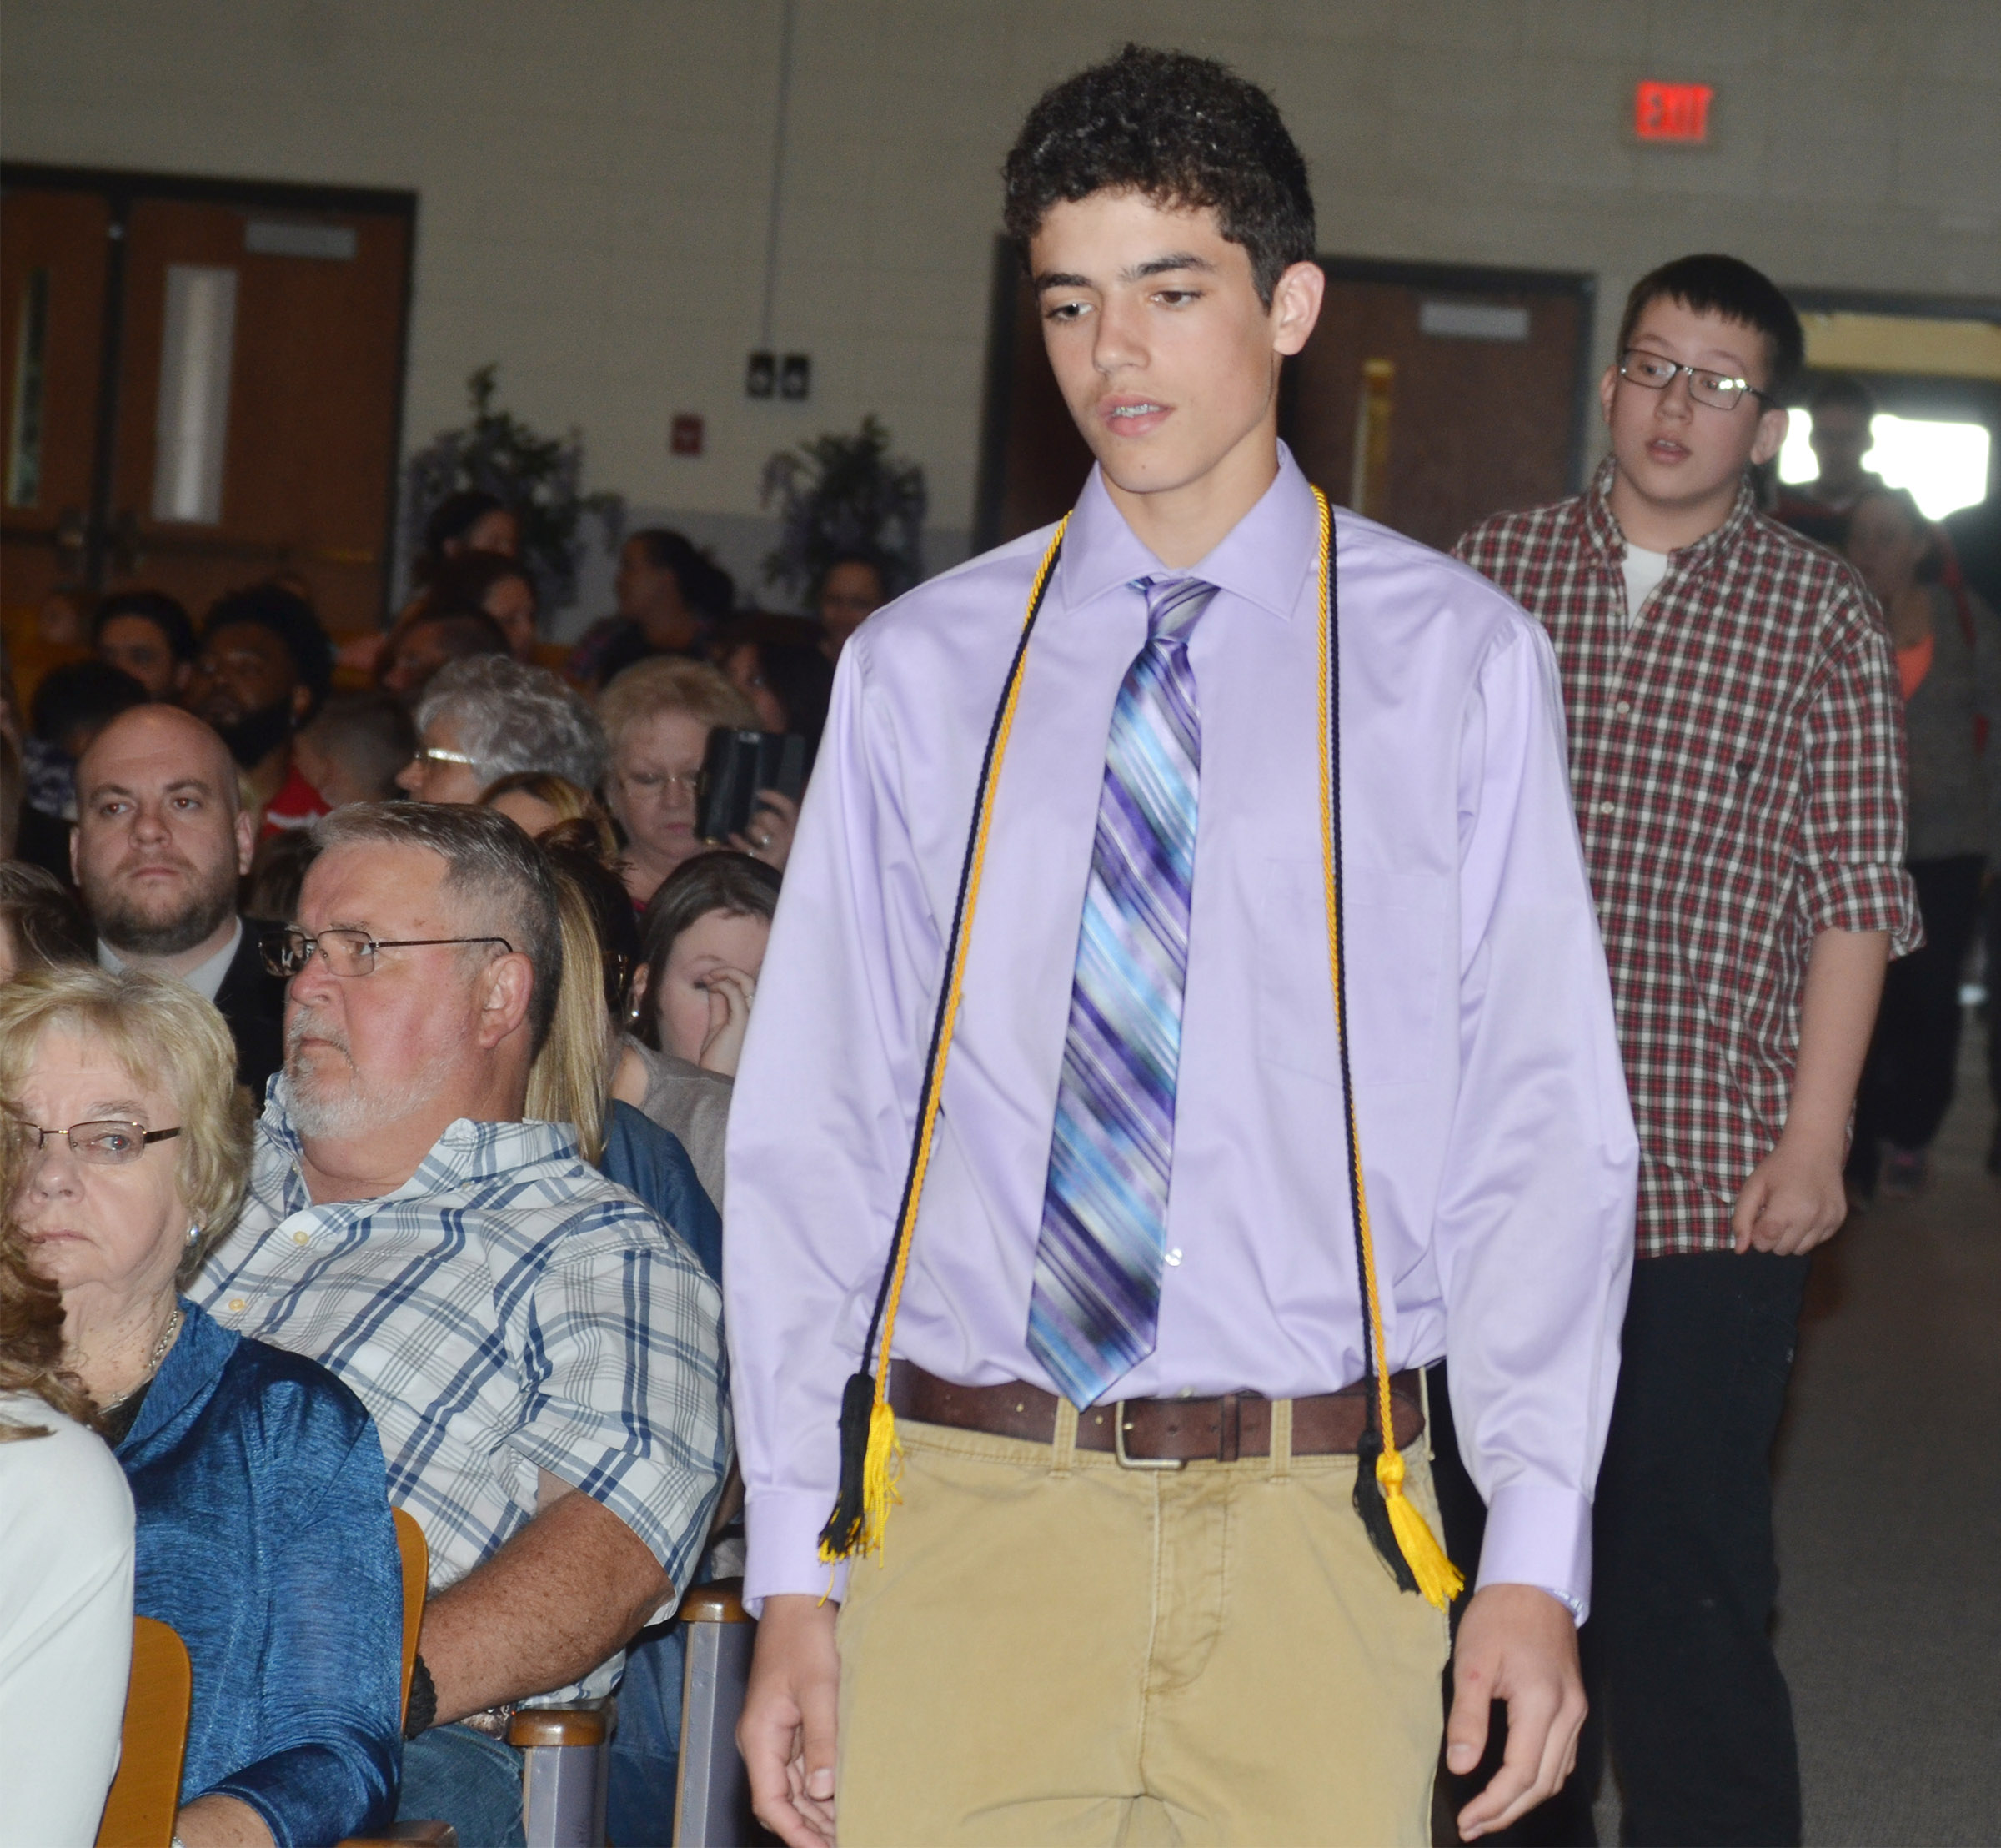 CMS eighth-grader Kameron Smith walks in for the recognition ceremony.